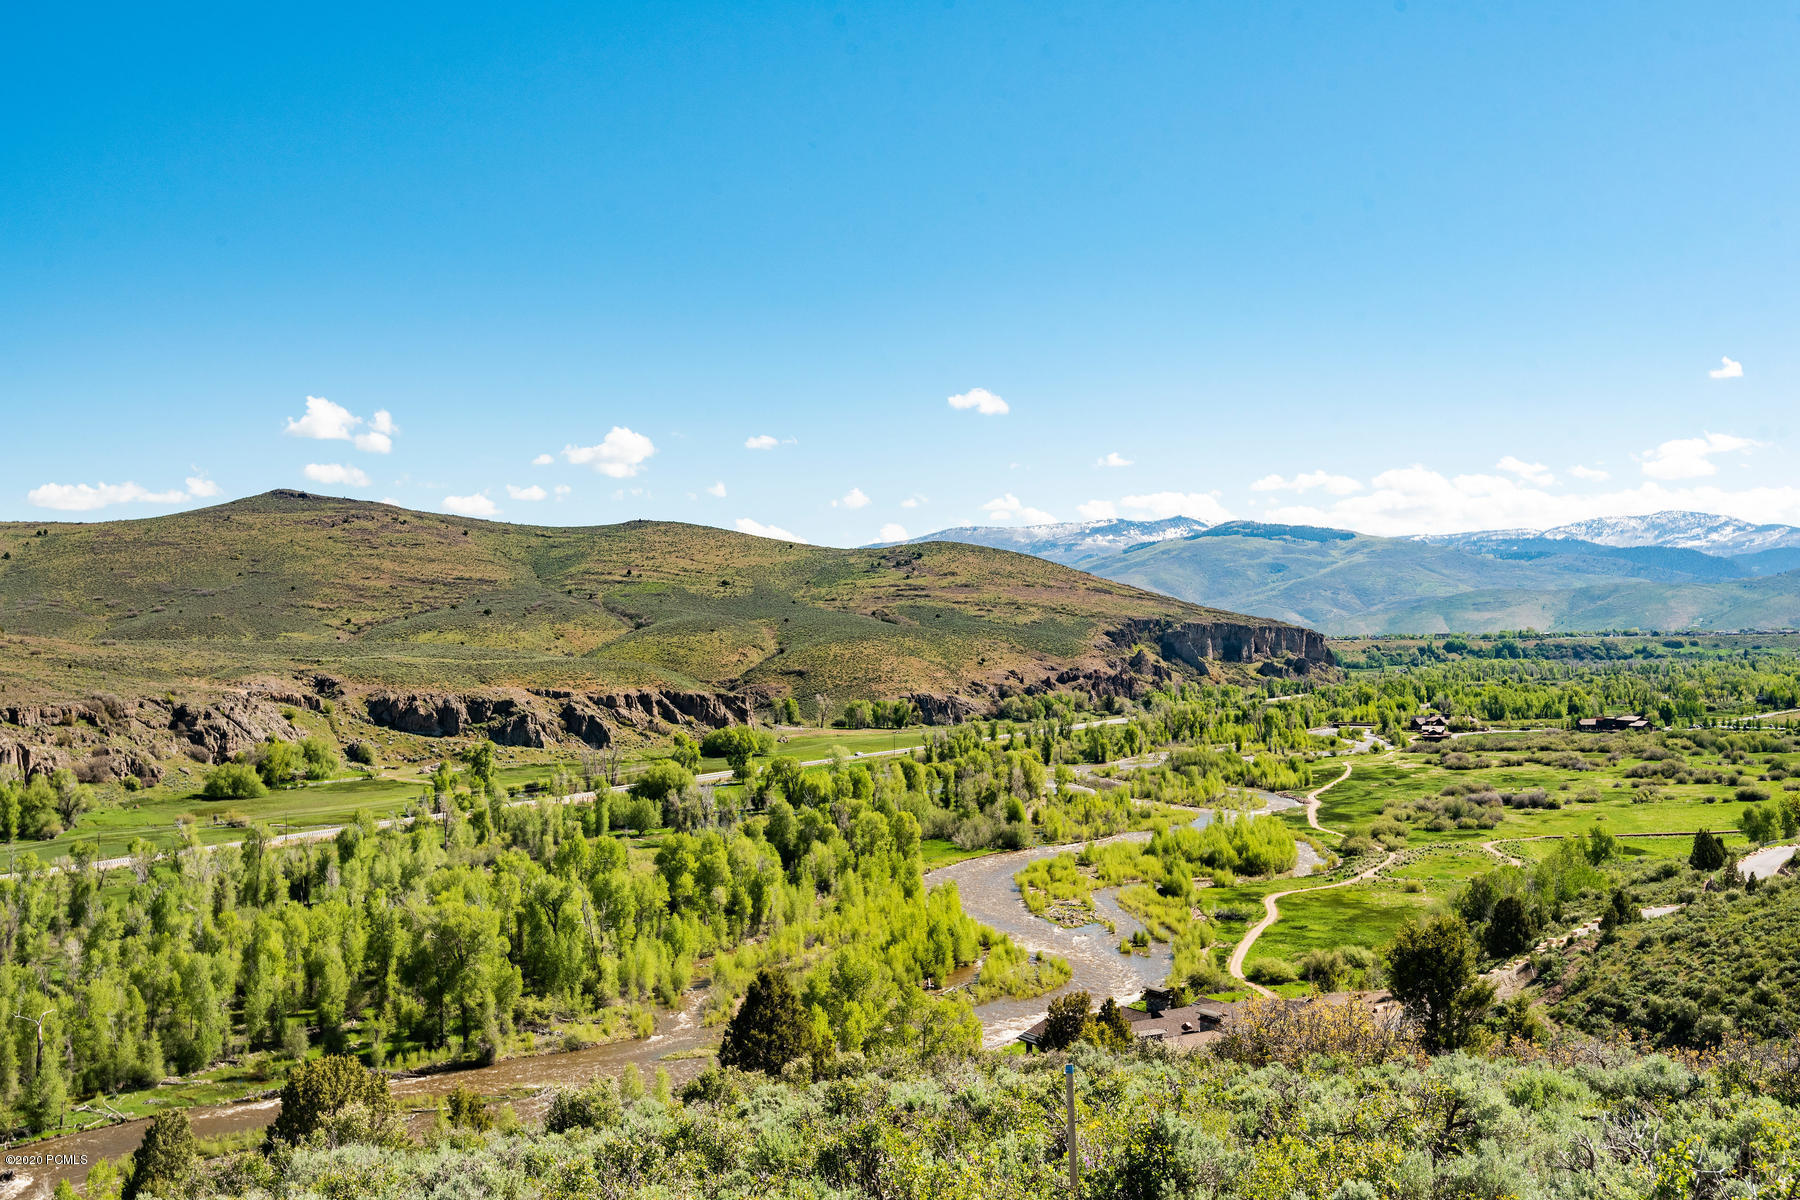 5725 Rock Chuck Dr, Lot #180, Heber City, Utah 84032, ,Land,For Sale,Rock Chuck Dr, Lot #180,20190109112430415765000000